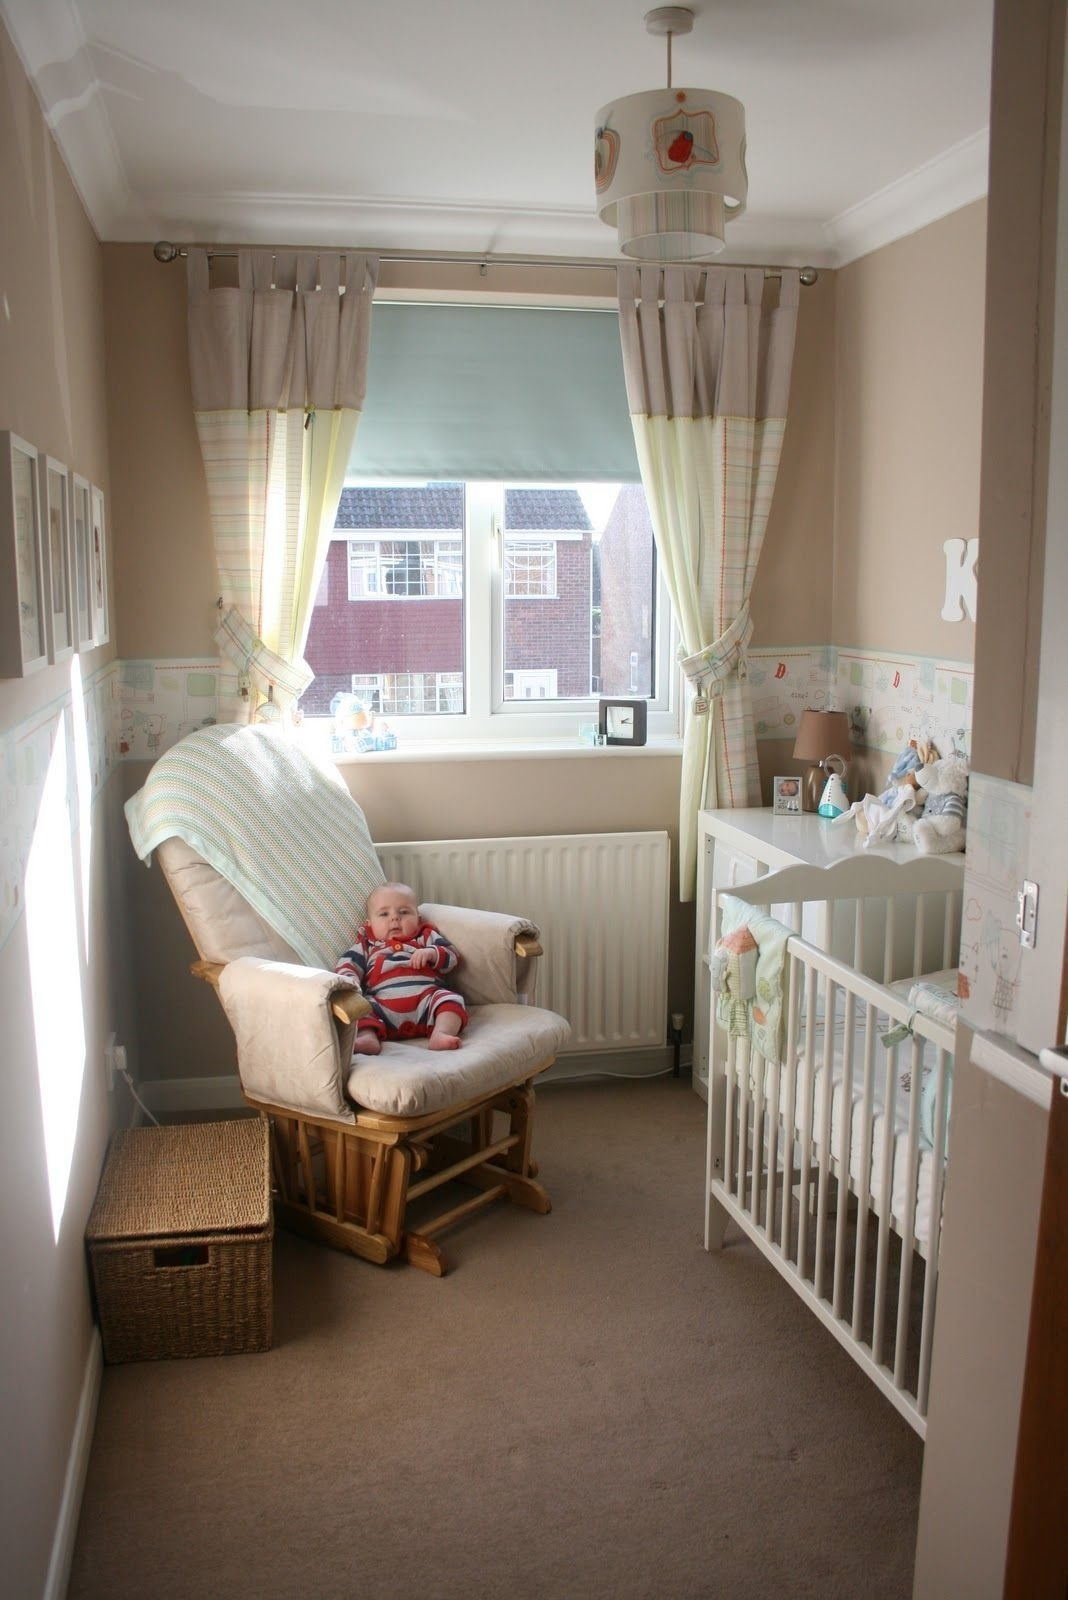 10 Gorgeous Nursery Ideas For Small Rooms small gender neutral nursery crib dresser changer and rocker 2020